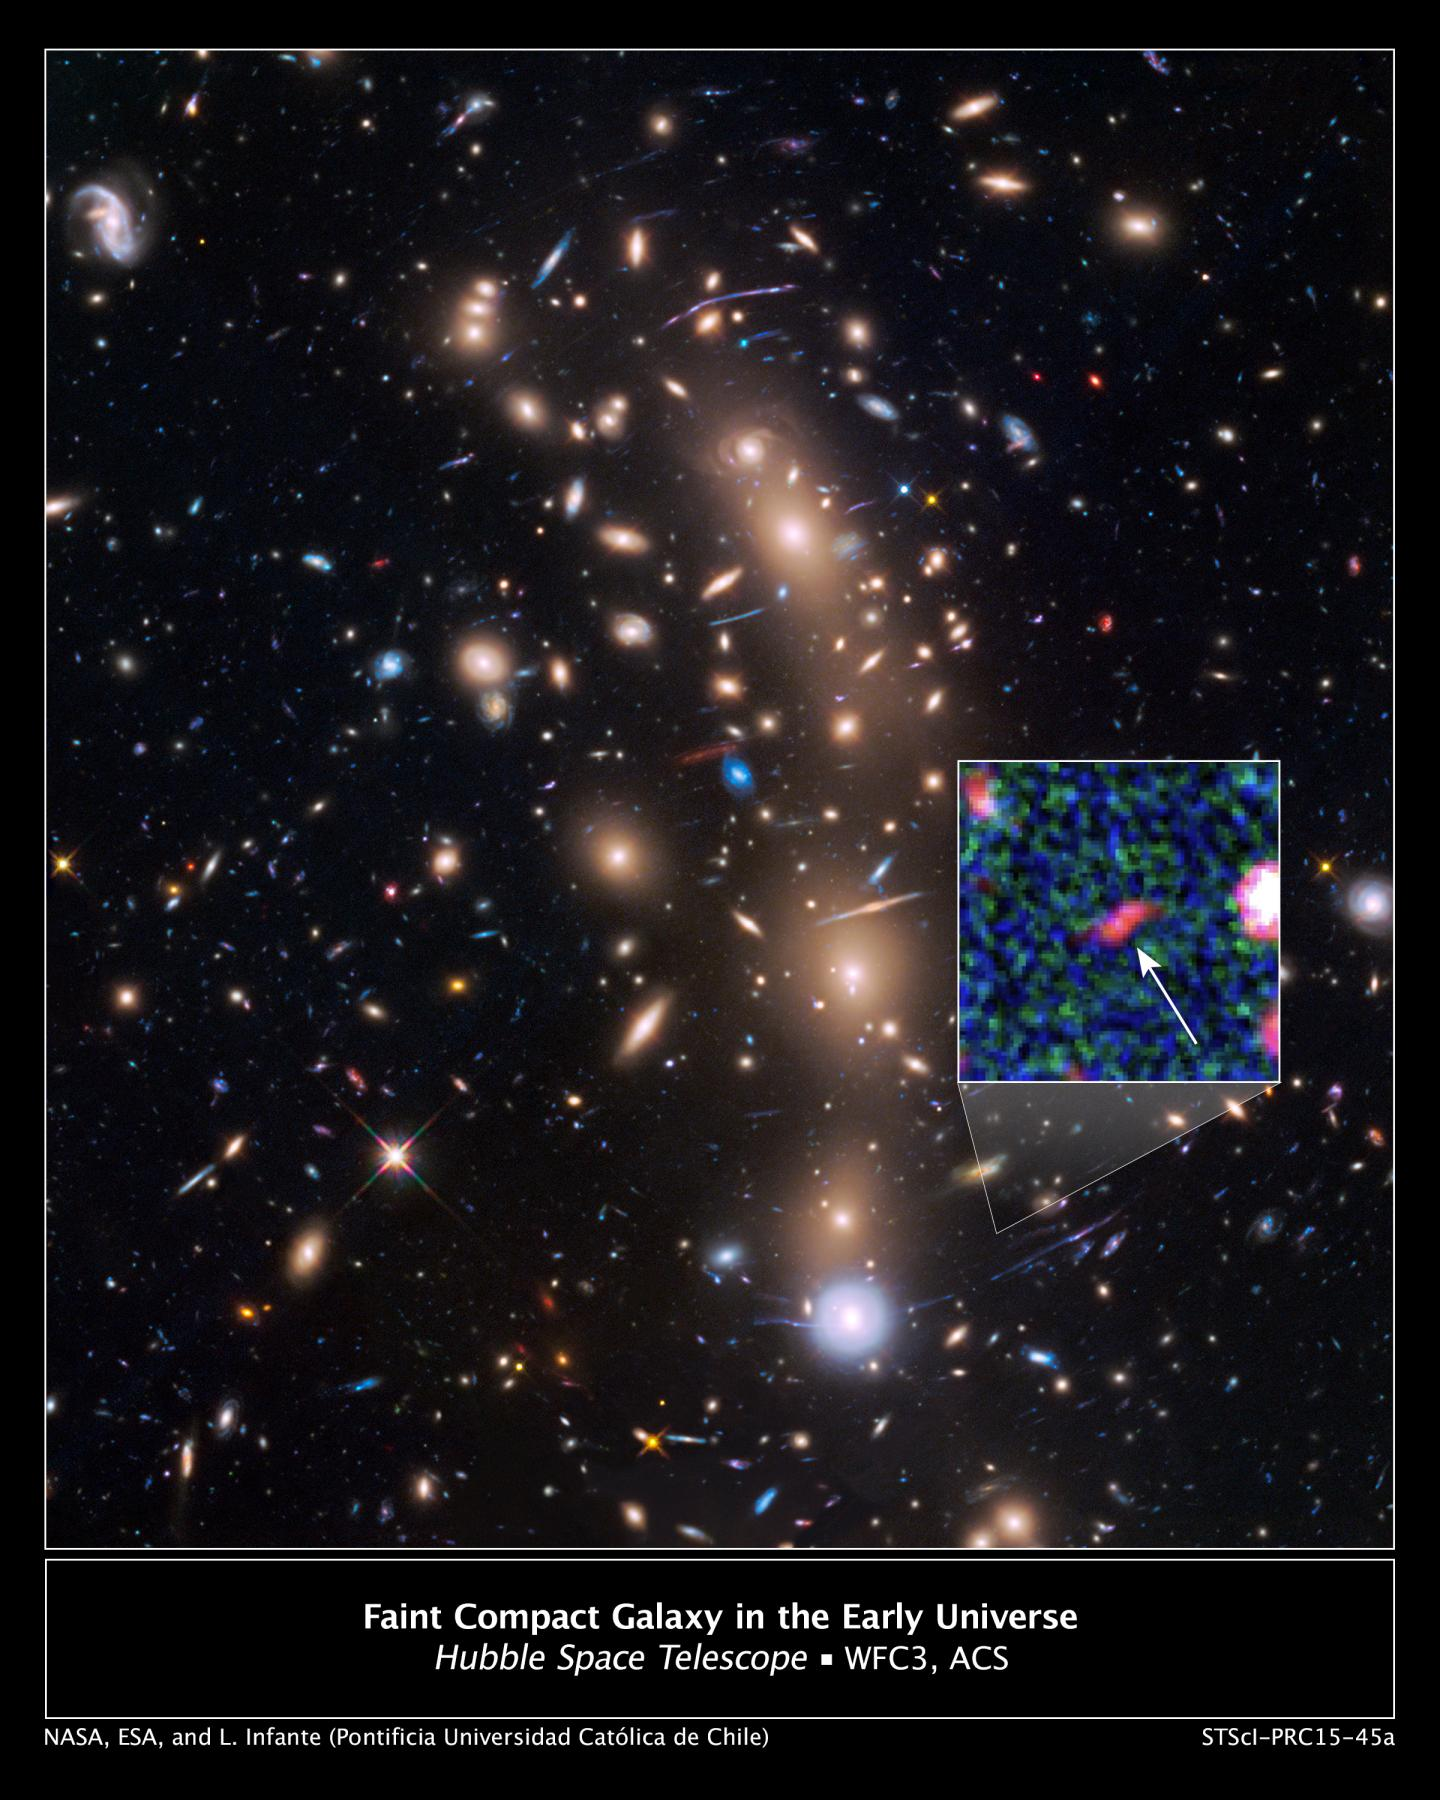 This is a Hubble Space Telescope view of a very massive cluster of galaxies, MACS J0416.1-2403, located roughly 4 billion light-years away. Credits: NASA, ESA, and L. Infante (Pontificia Universidad Catolica de Chile)